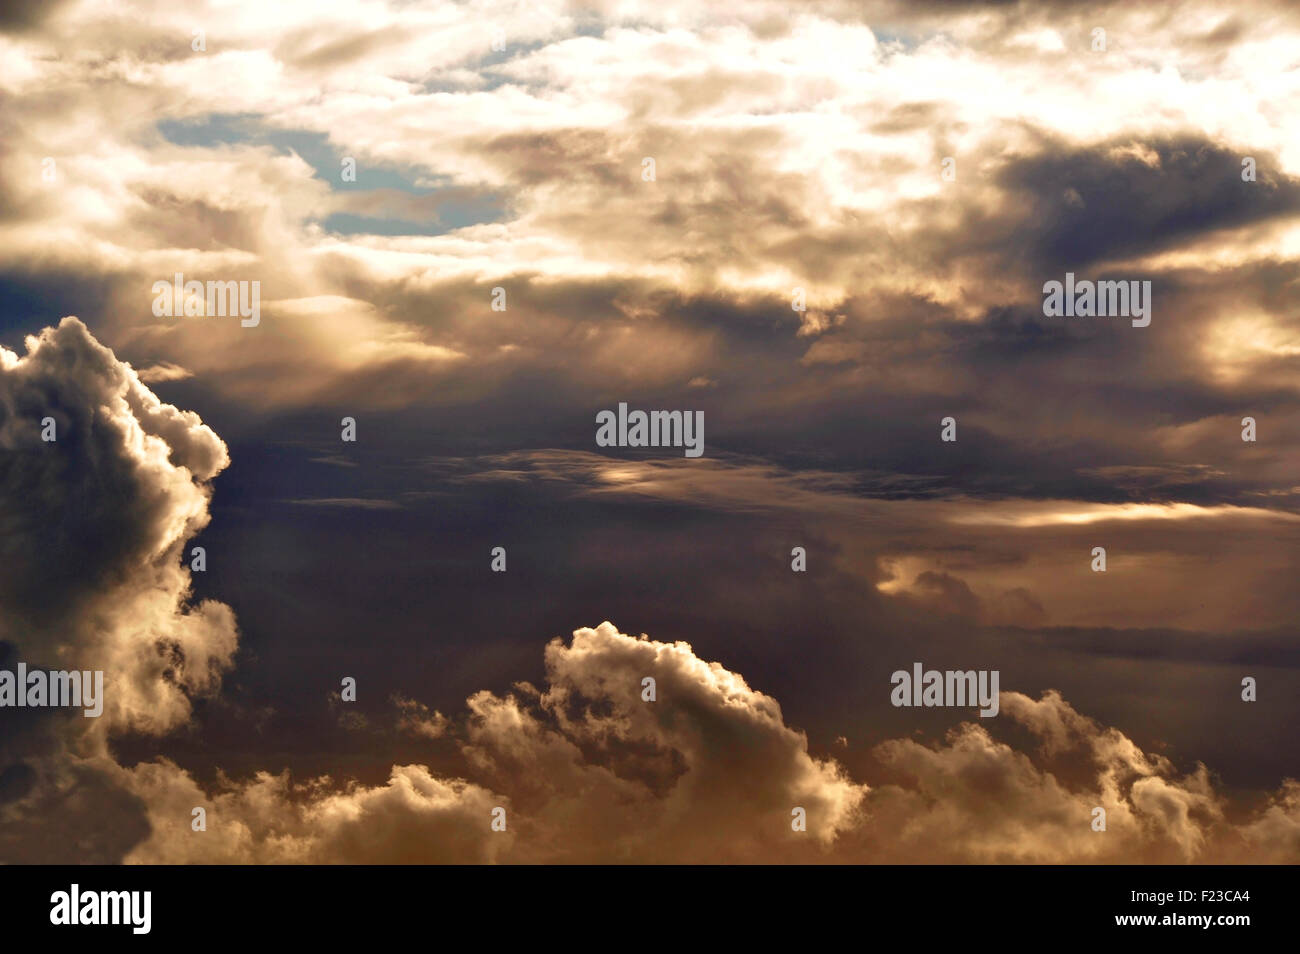 Skyscape. Moody cloud formation - Stock Image